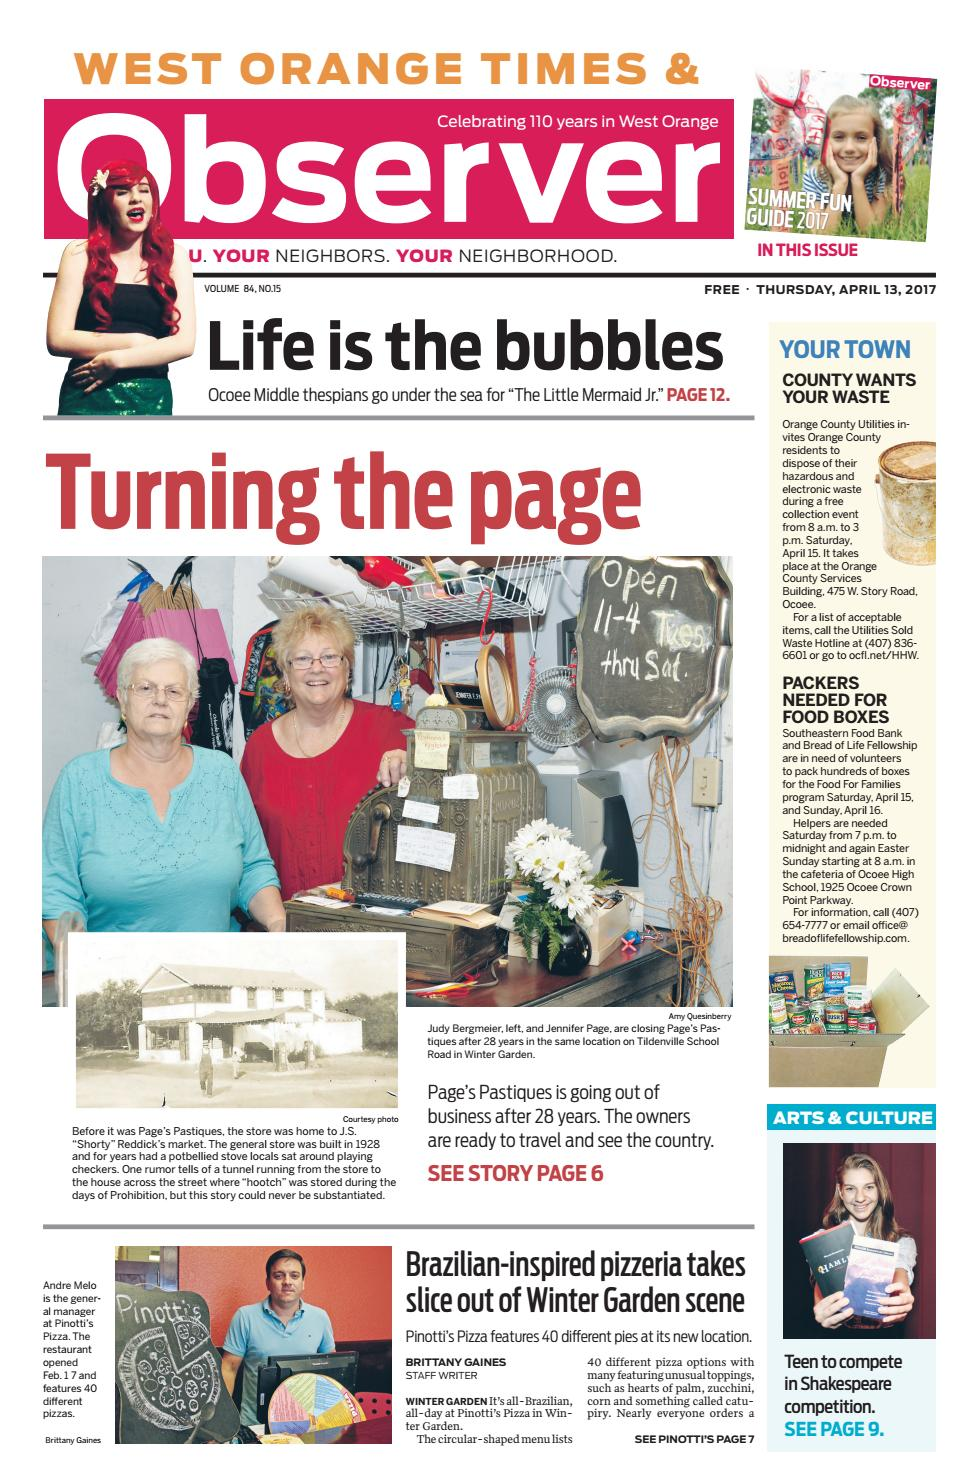 04 13 17 west orange times u0026 observer by orange observer issuu